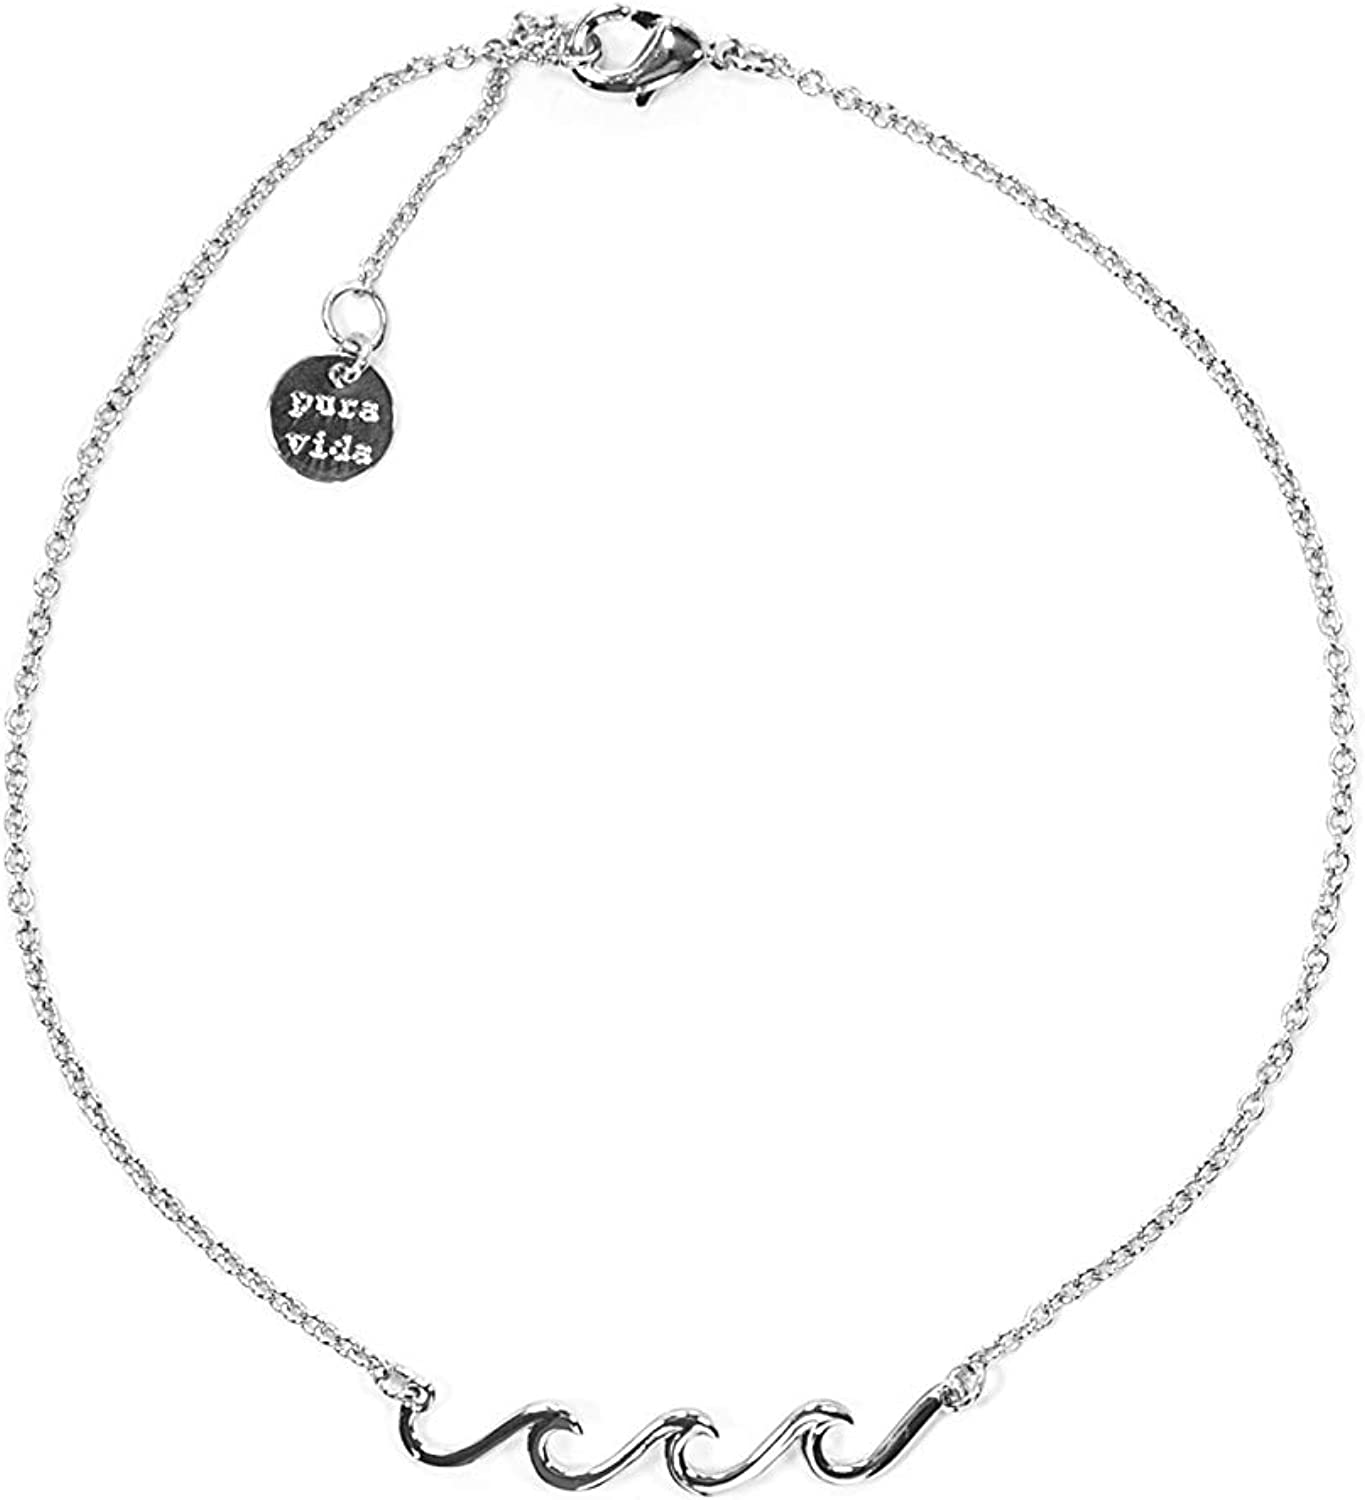 Cable Chain Pura Vida Silver or Gold or Rose Gold Plated Delicate Wave Anklet Charm Adjustable Band